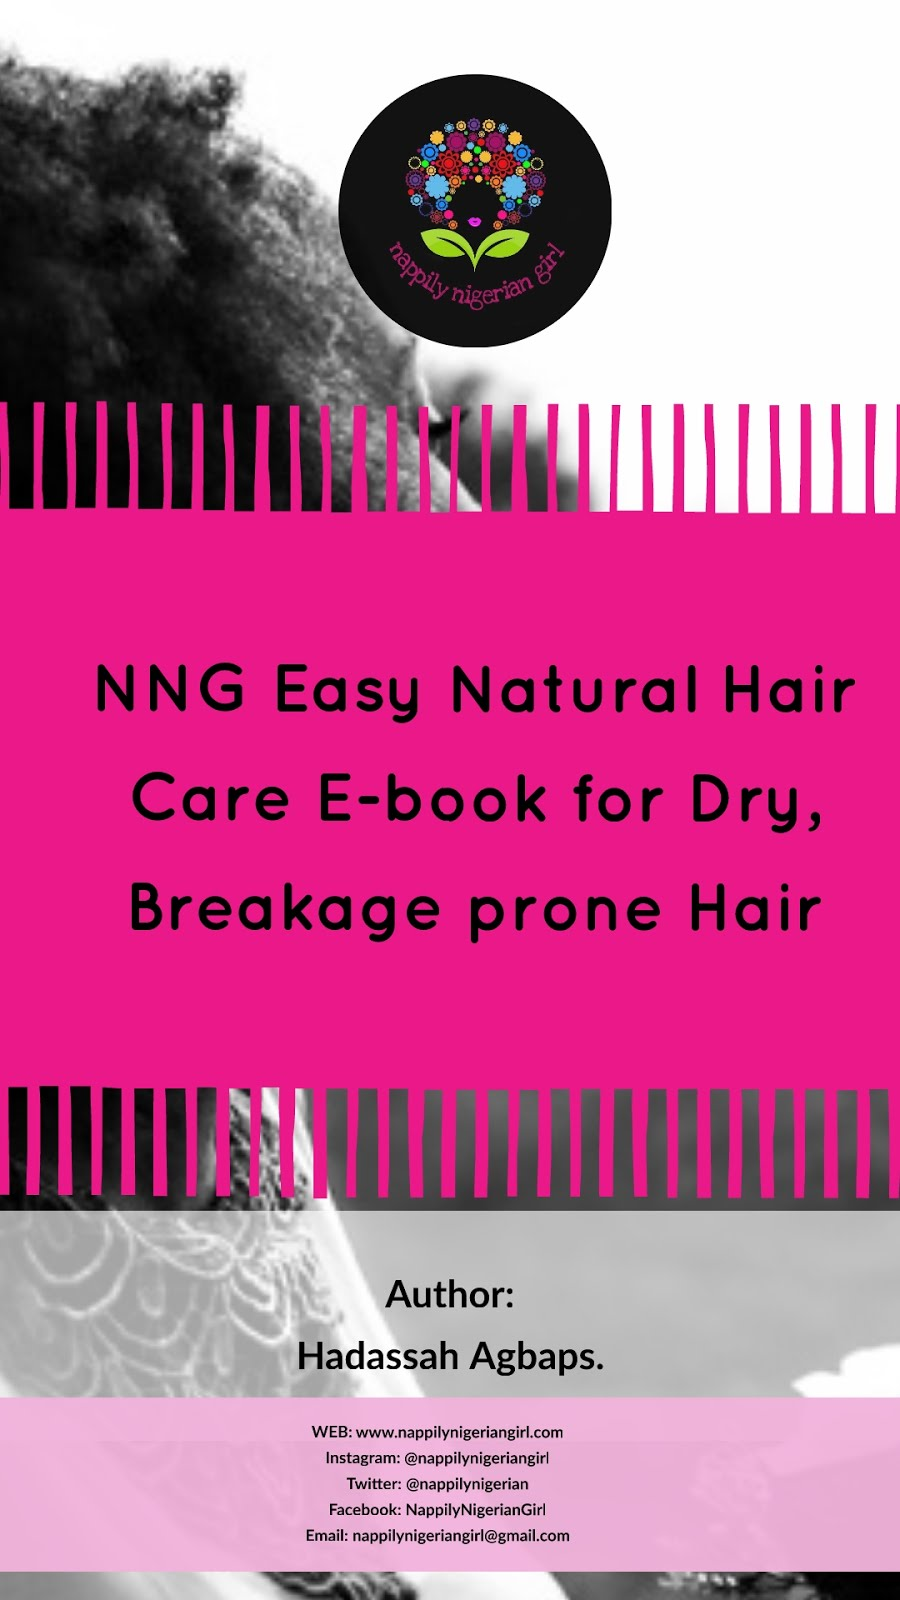 NNG GUIDE FOR DRY, BREAKAGE PRONE NATURAL HAIR